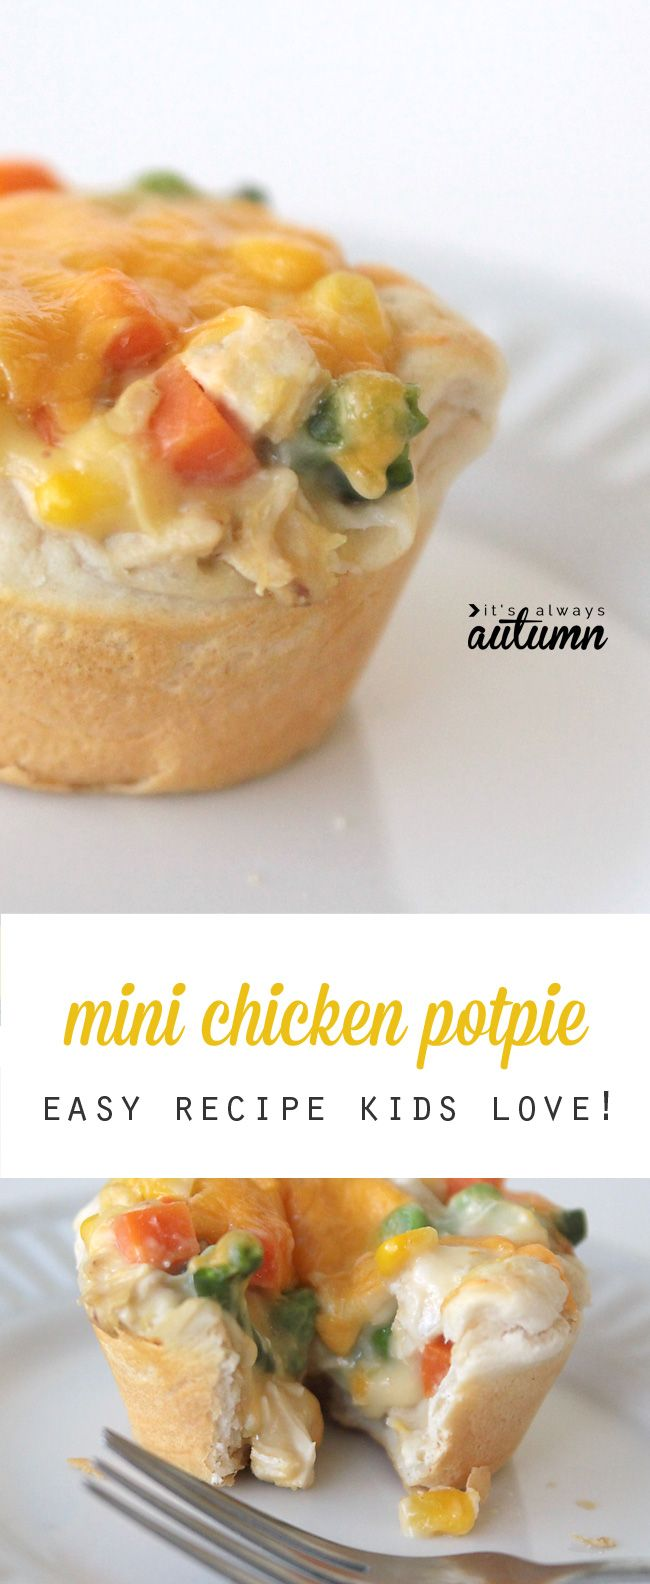 Kids Will Love These Cute Mini En Potpies Even S Like Them Easy Dinner Recipe Sp